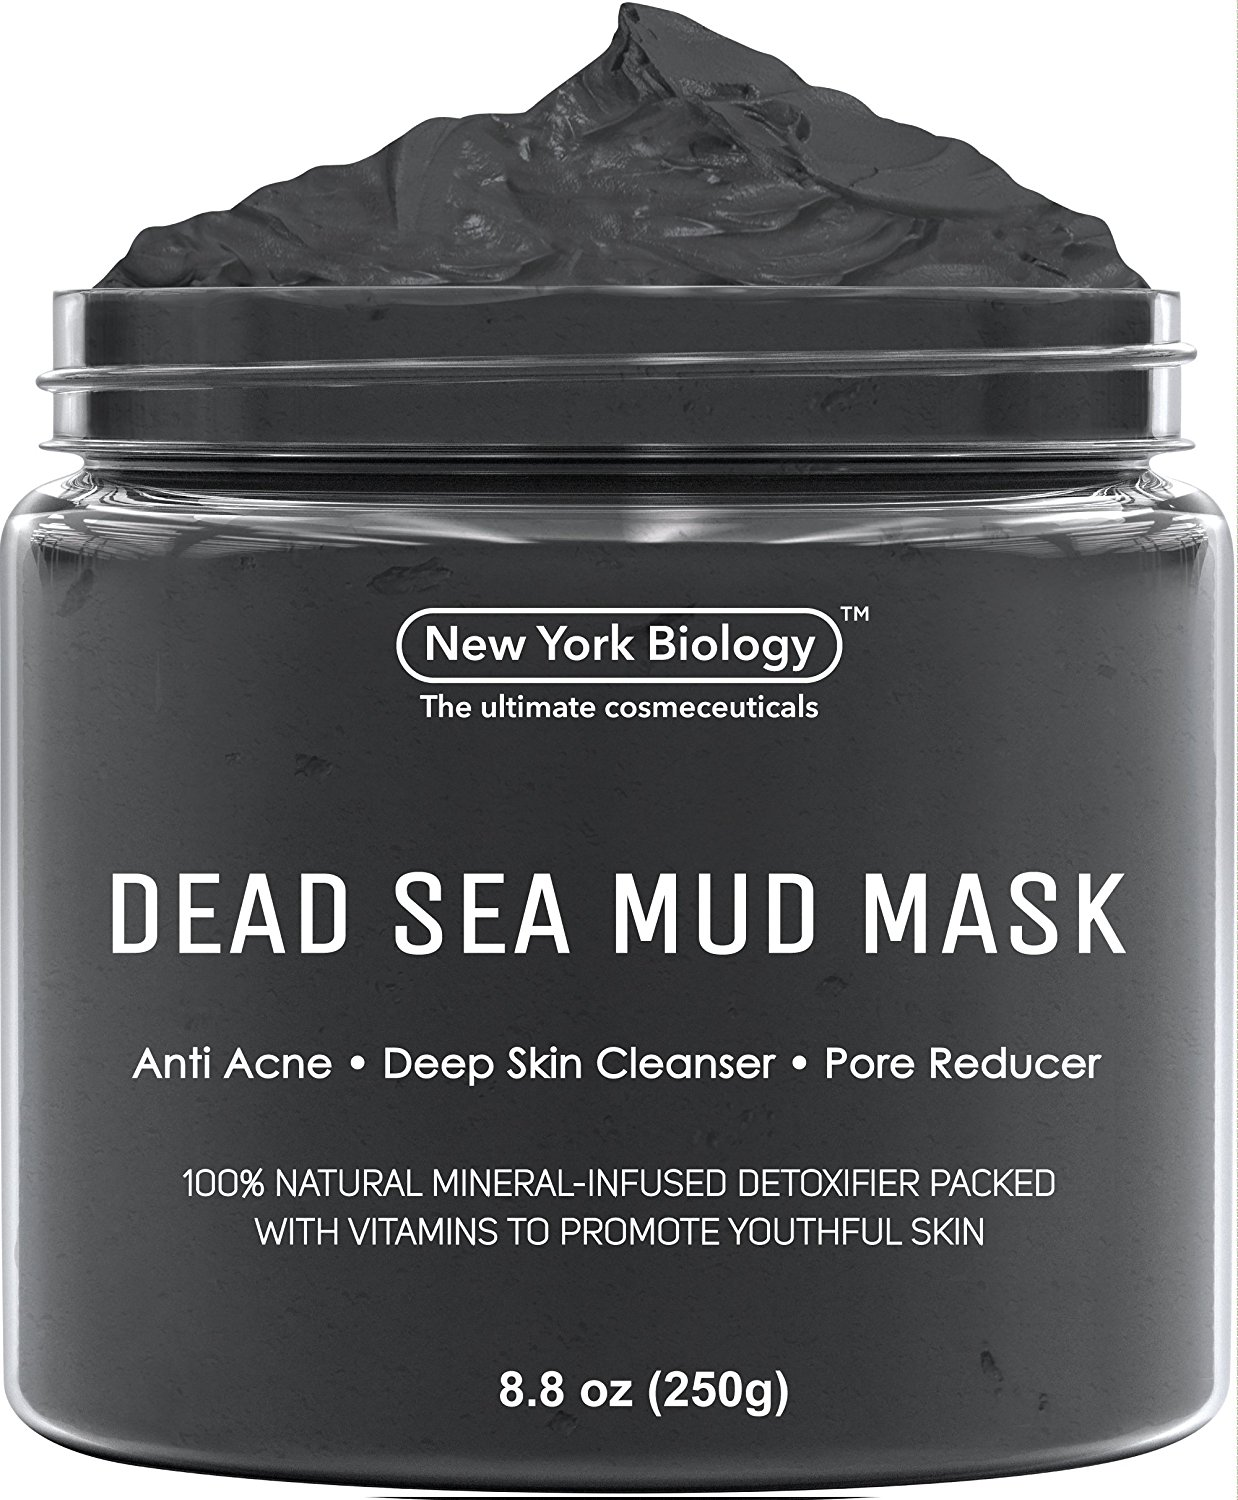 Dead Sea Mud Mask -- Cleanse your face thoroughly, then apply a thin layer of the mask, avoiding the eye and lip area. Leave it on for 10 minutes, then use warm water (and a dark washcloth!) to massage your face and remove the mask, and follow up with your moisturizer. (Image: Courtesy New York Biology)